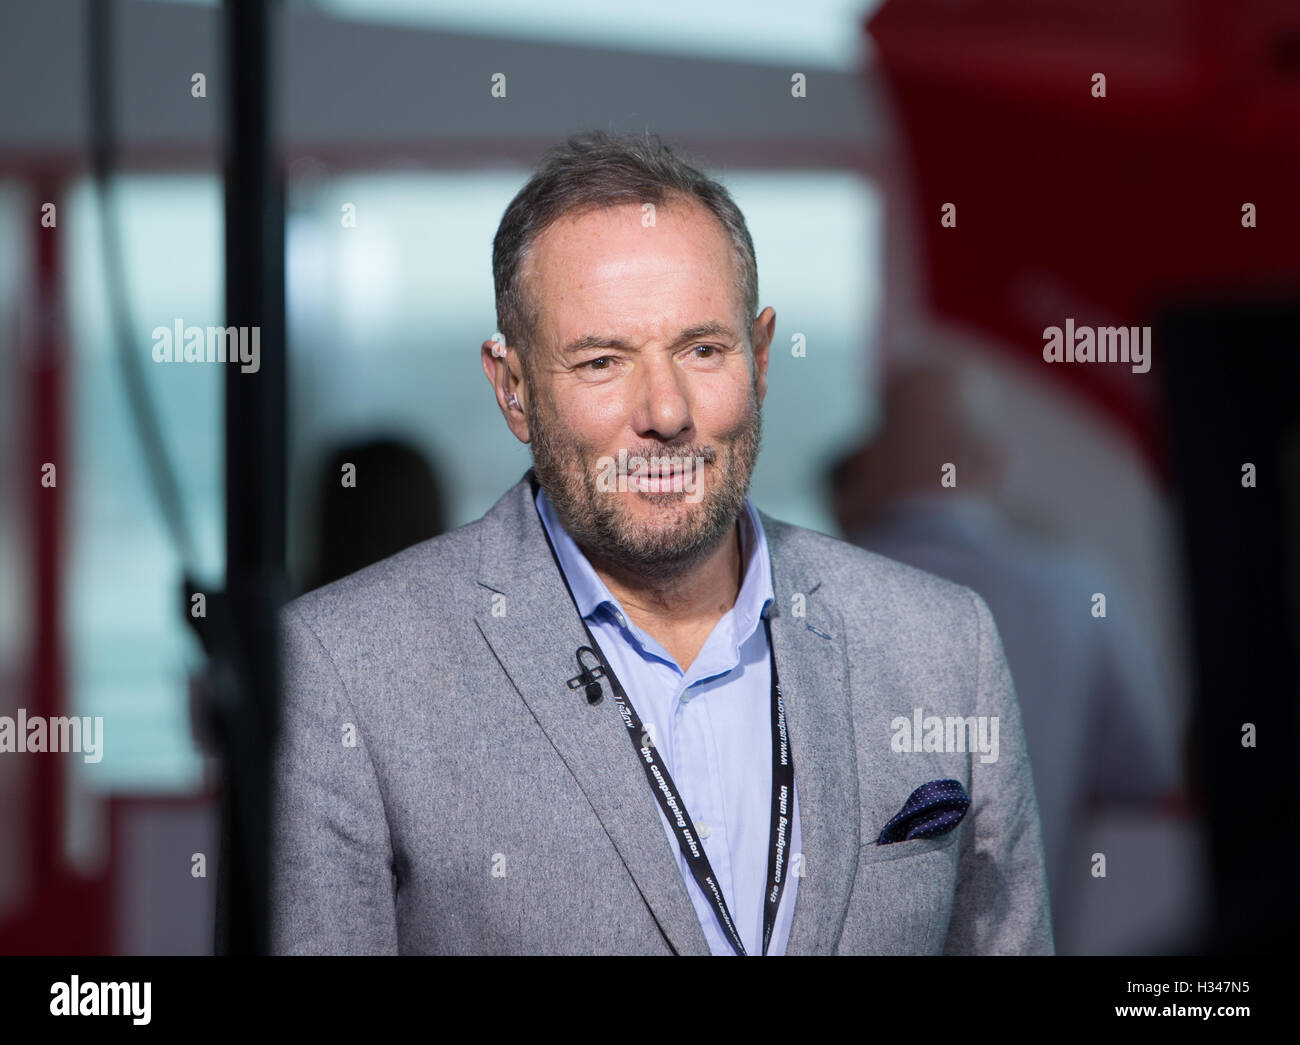 Derek Hatton being interviewed at the AAC Arena in Liverpool during the Labour party conference 2016 - Stock Image